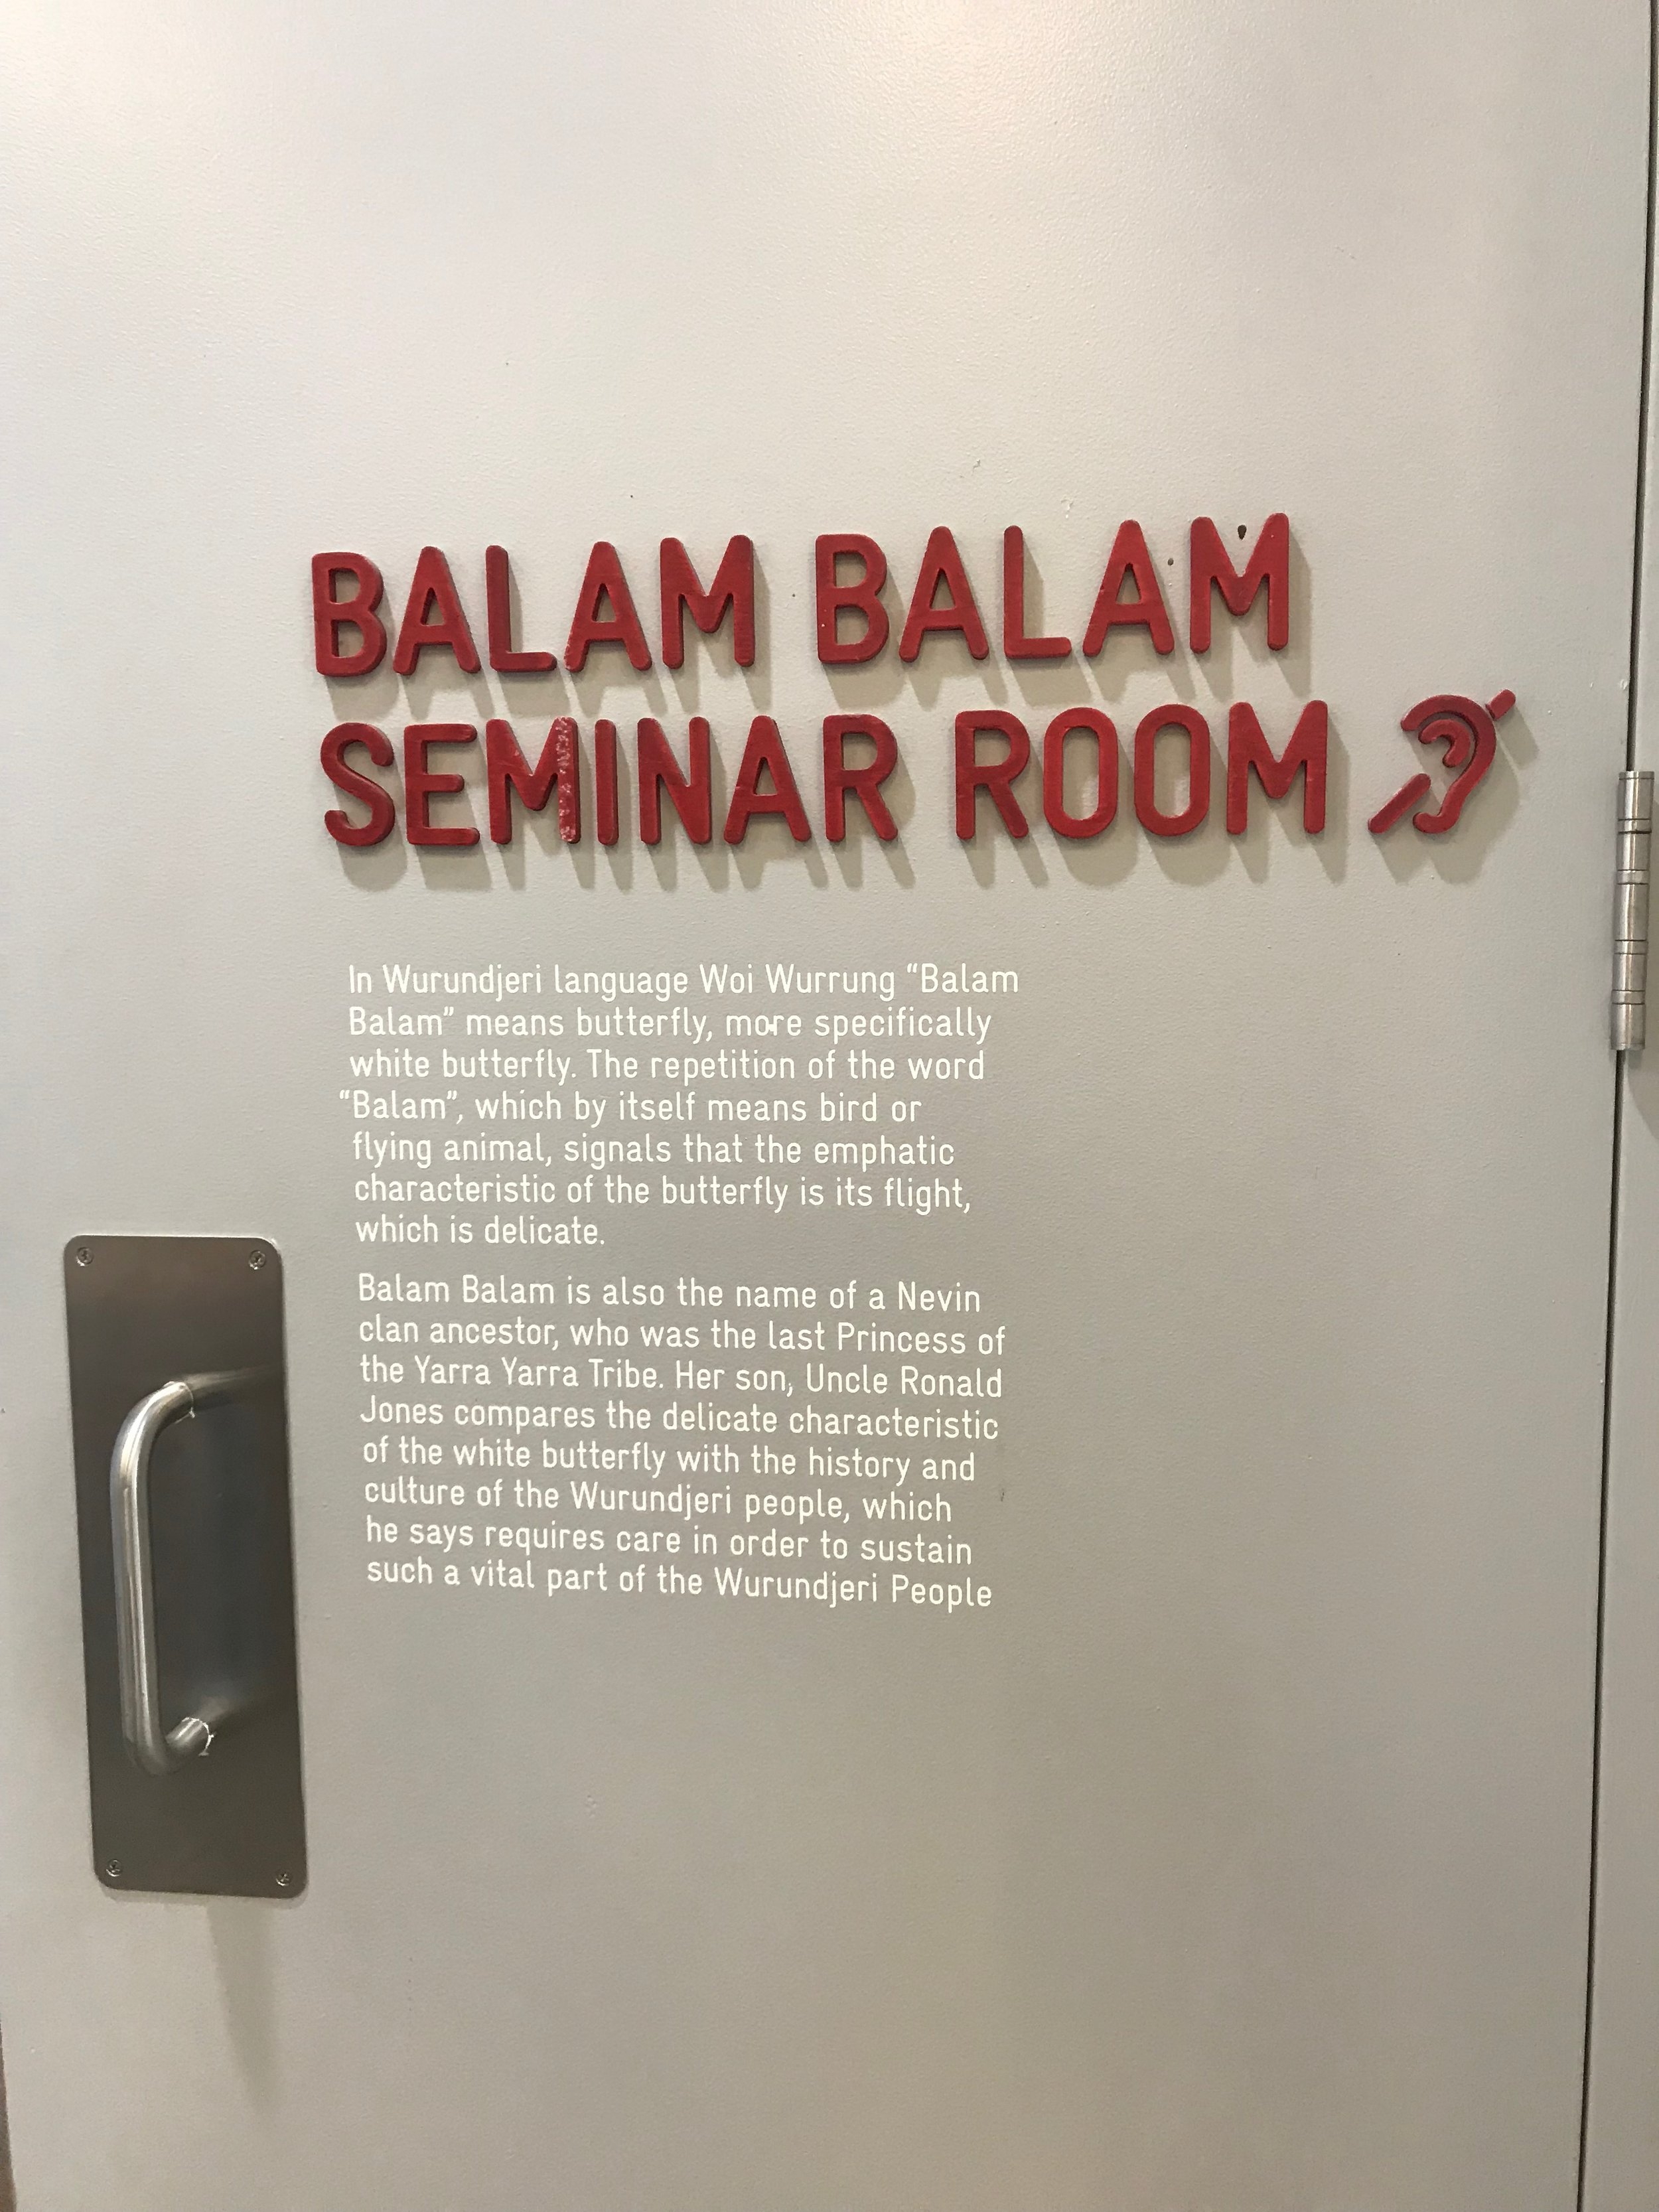 Fitting with the role of libraries in local studies, each room is named for and shares the story of a local historical figure.